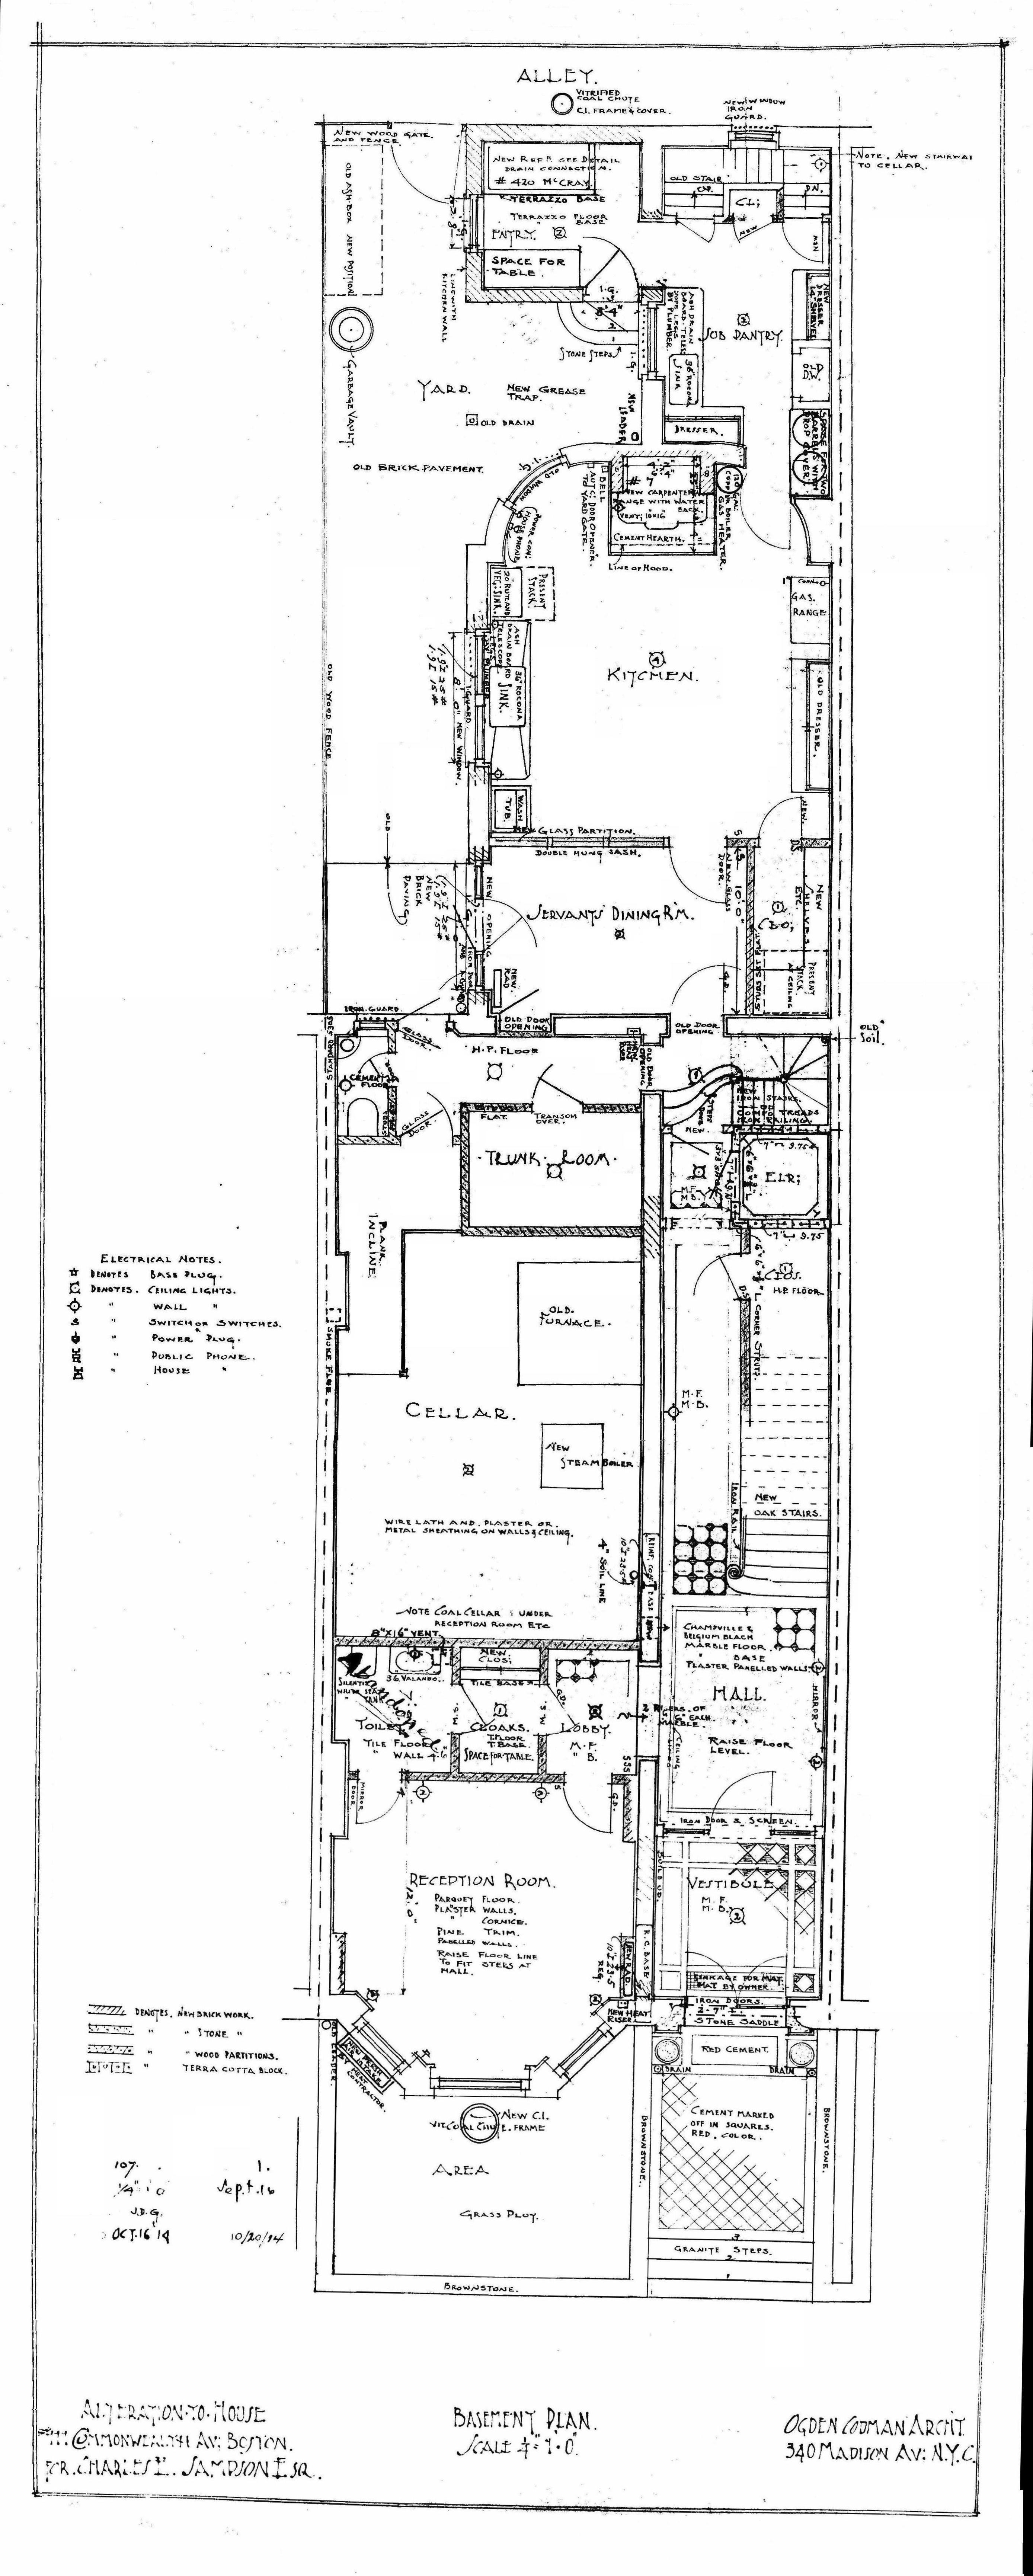 Architectural Plans: 111 Commonwealth